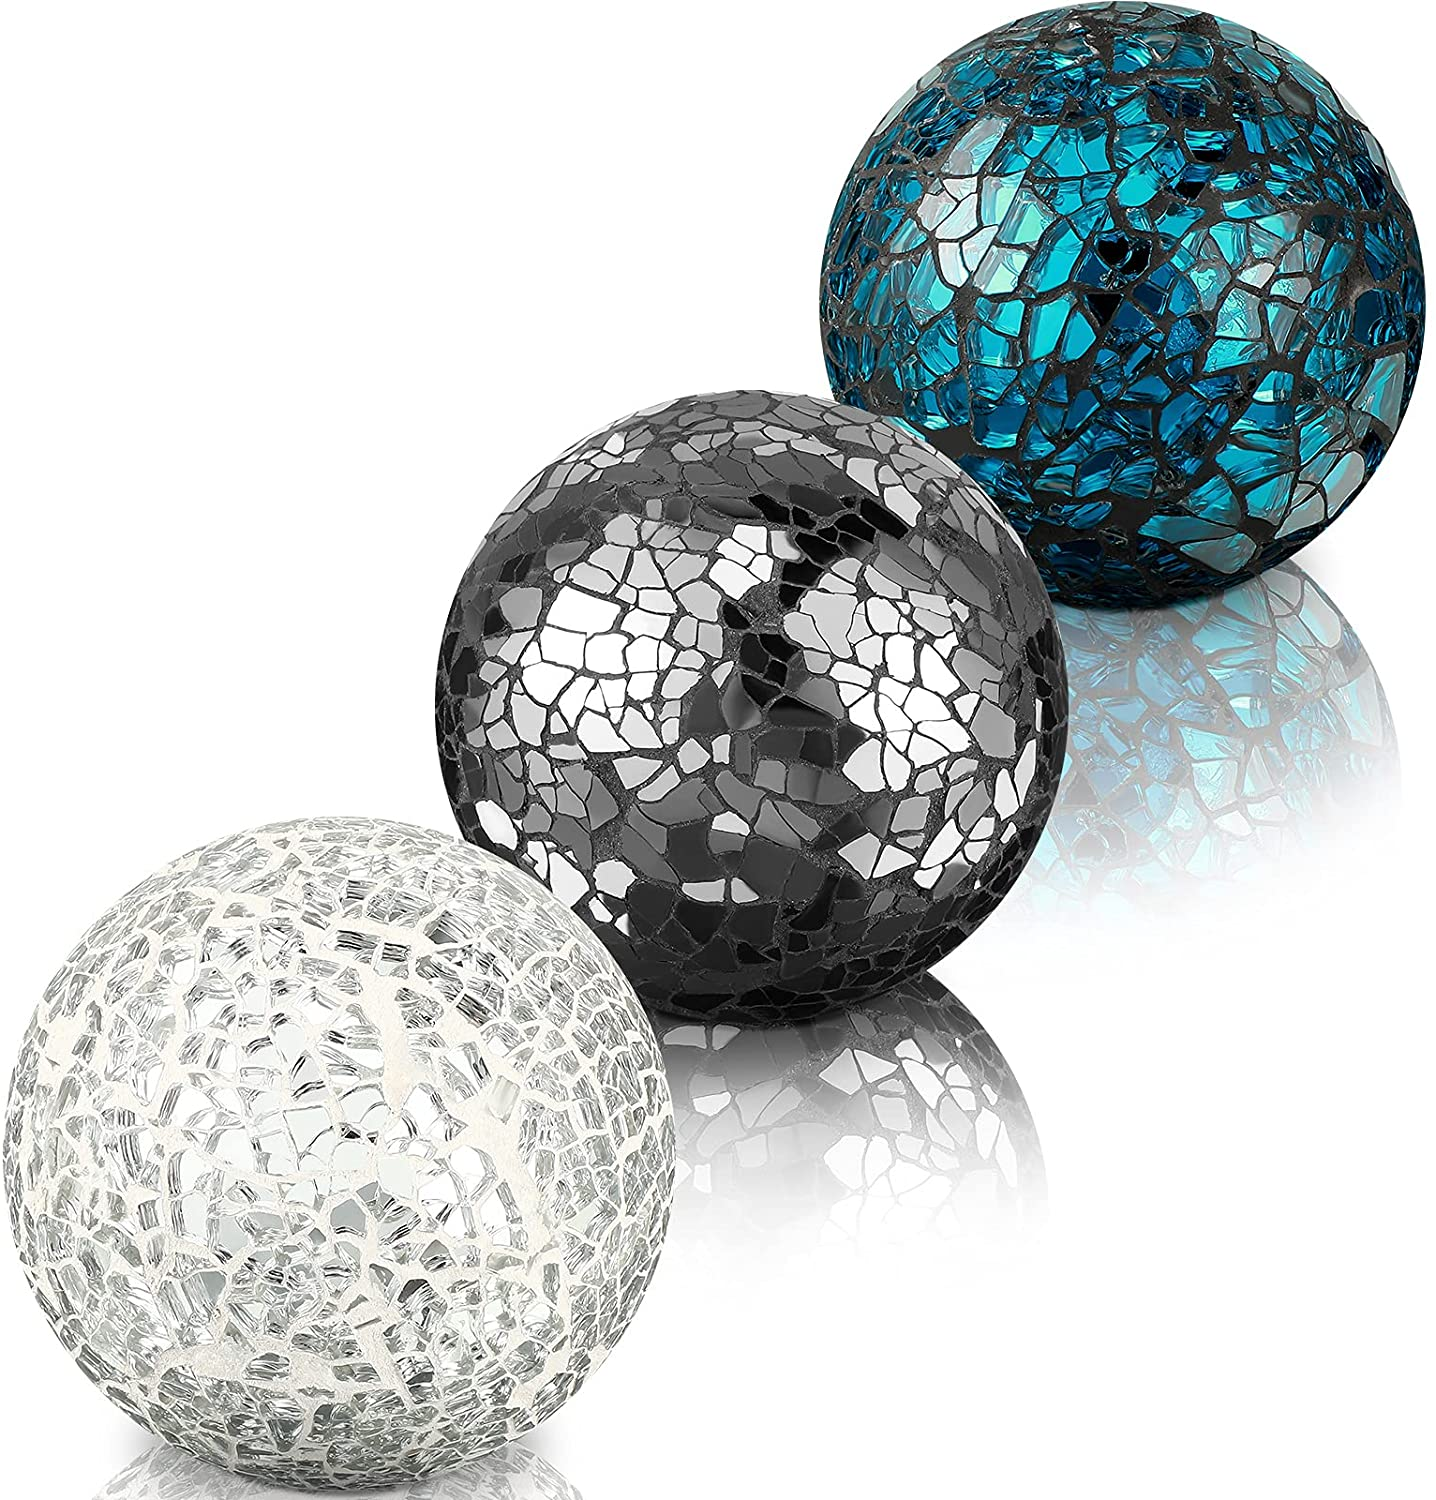 3 Pieces Decorative Balls Mosaic Glass Sphere Centerpiece Orb Glass Vase Balls Vases Dining Table Decorations (Silver, Turquoise, Black)